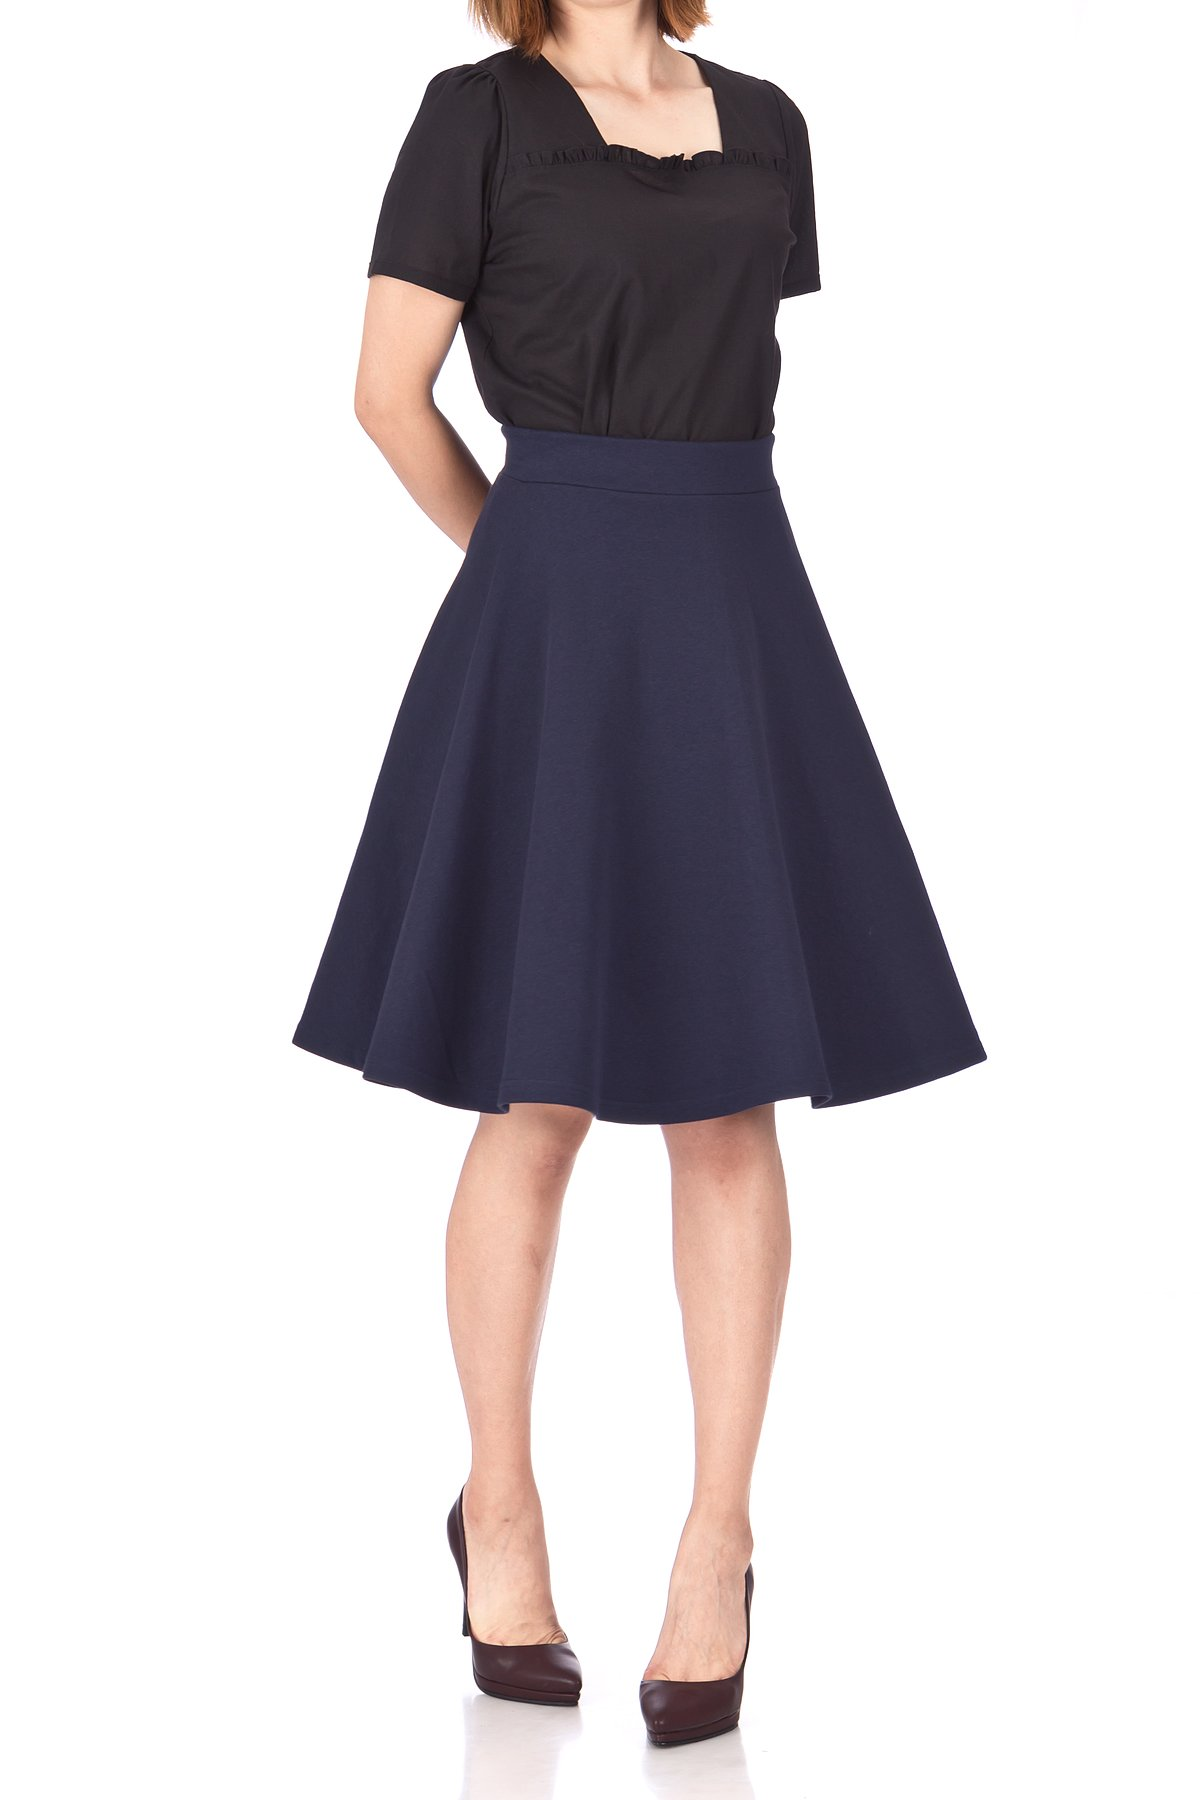 Comfy and Lovely Cotton Blend Versatile Casual Office High Waist A line Full Flared Swing Circle Skater Knee Length Skirt Navy 01 1